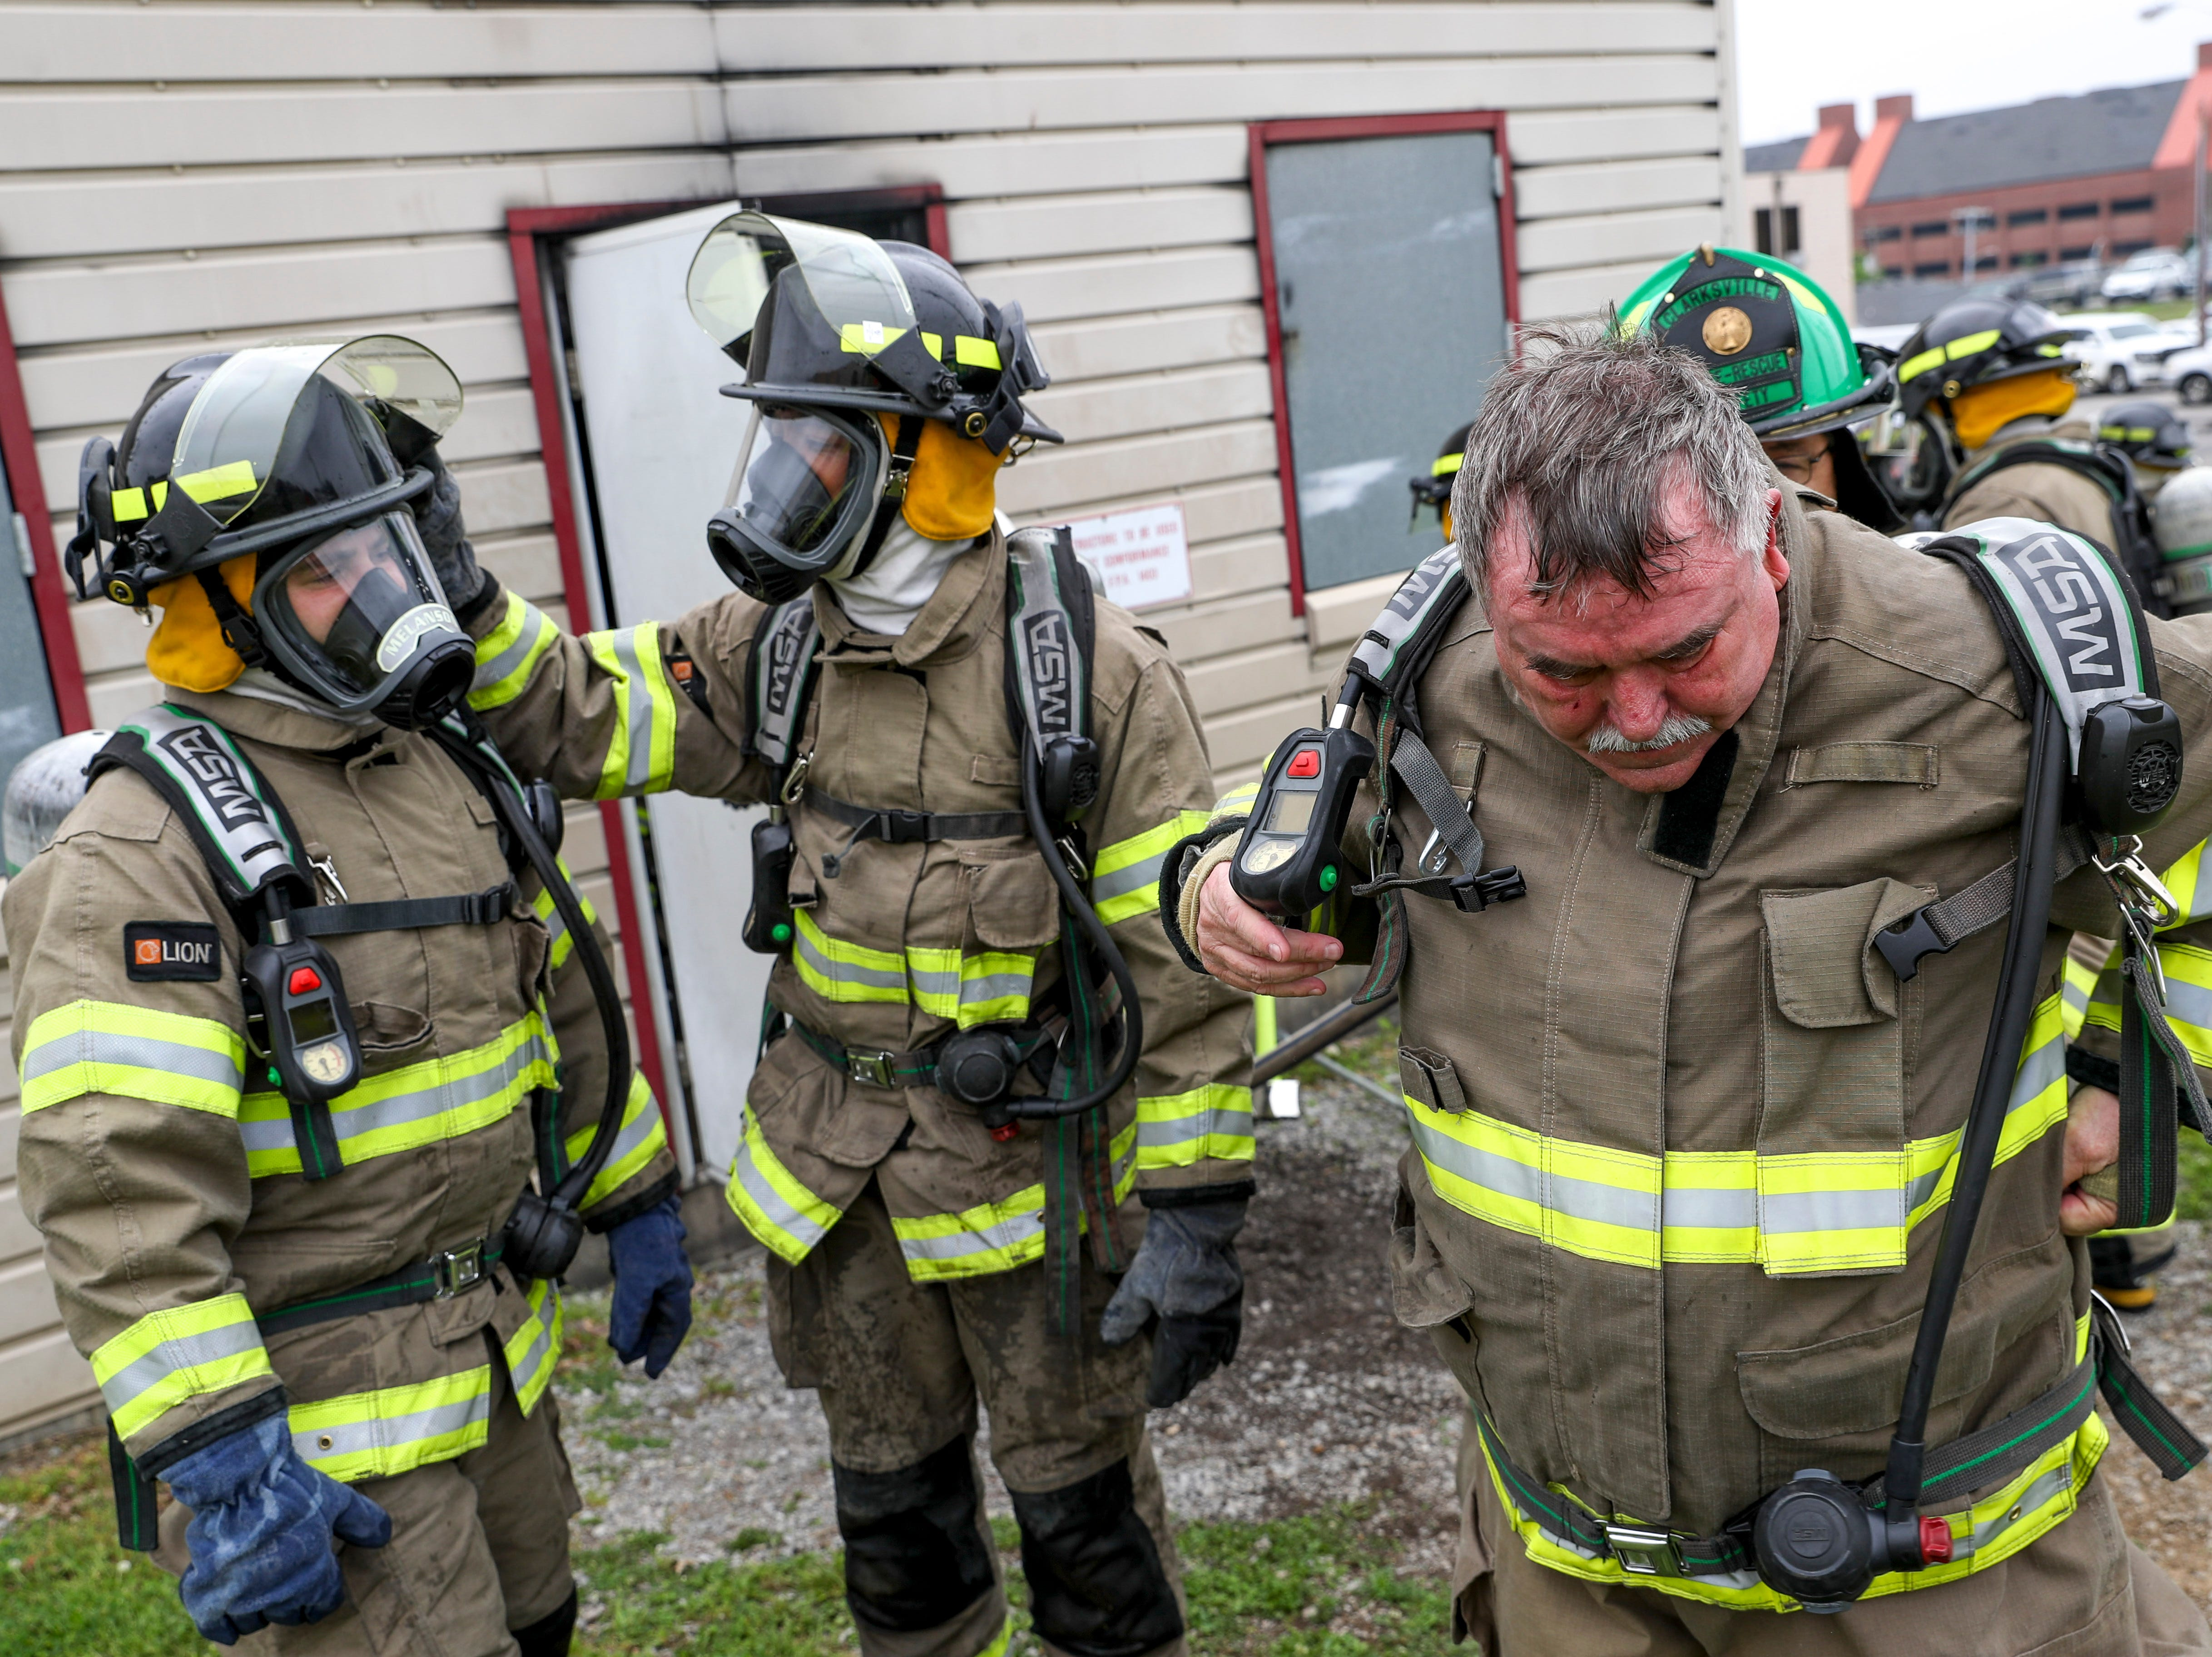 Another firefighter helps remove the oxygen tank from Chief Mike Roberts while new recruits adjust their head gear at Clarksville Fire Rescue in Clarksville, Tenn., on Friday, May 10, 2019.